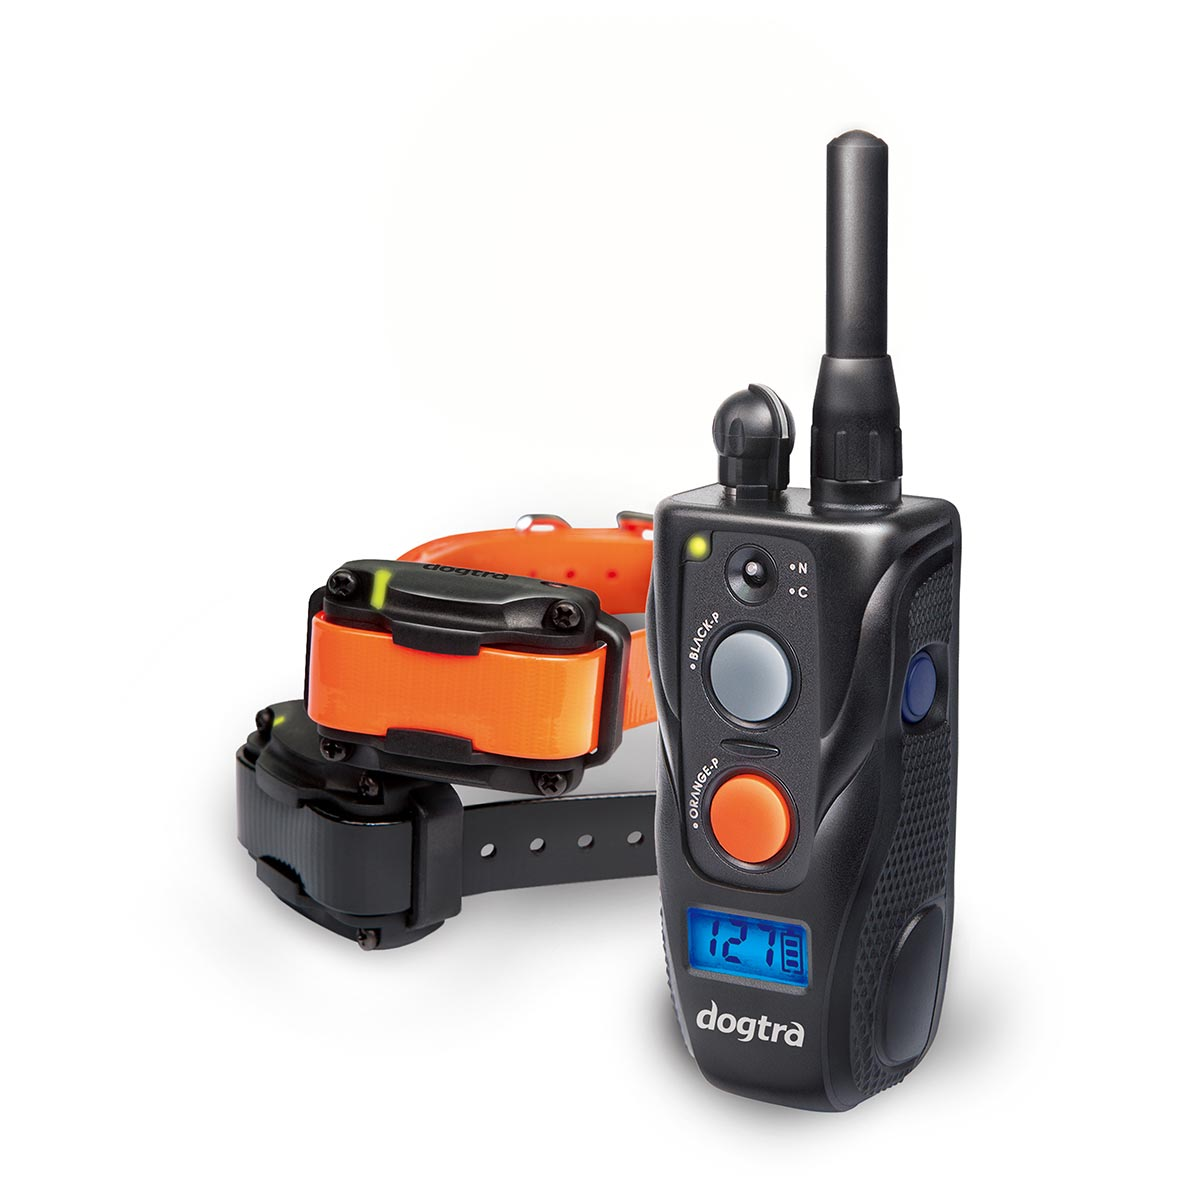 Dogtra 1/2 Mile 2 Dog Remote Trainer Dog Training - London the Local